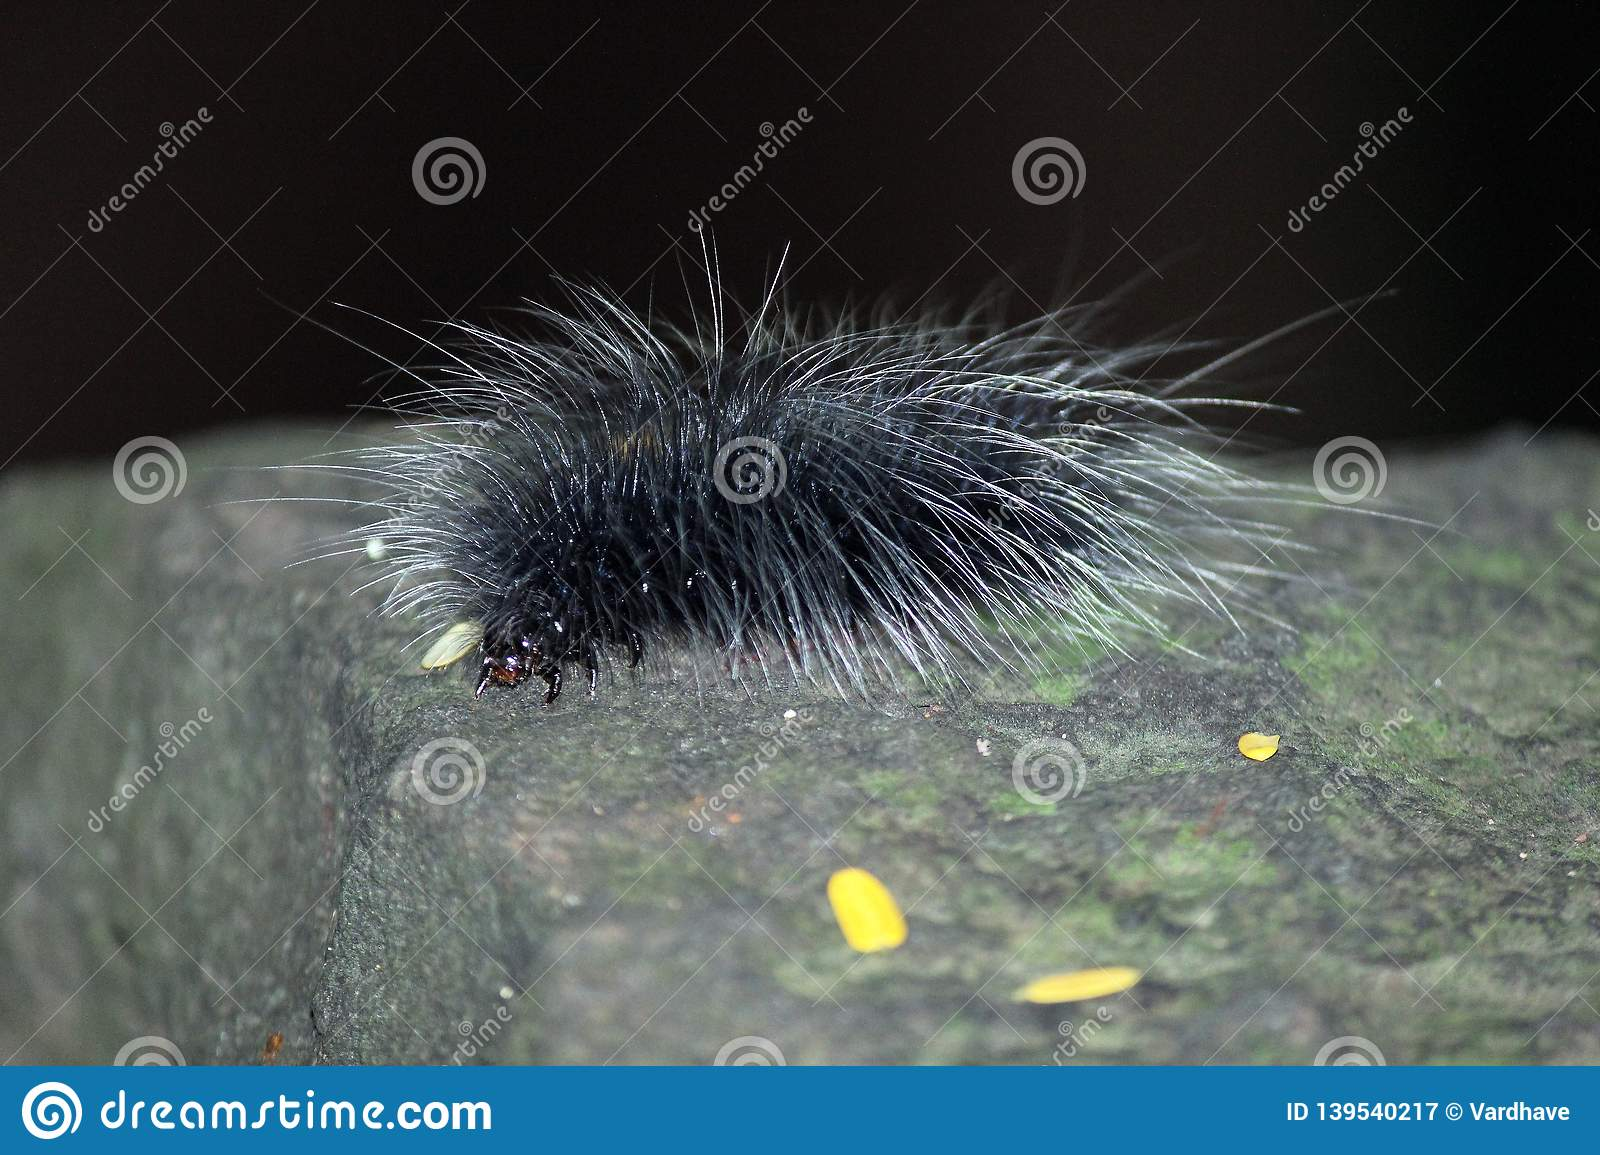 Black hairy caterpillars on tree trunk